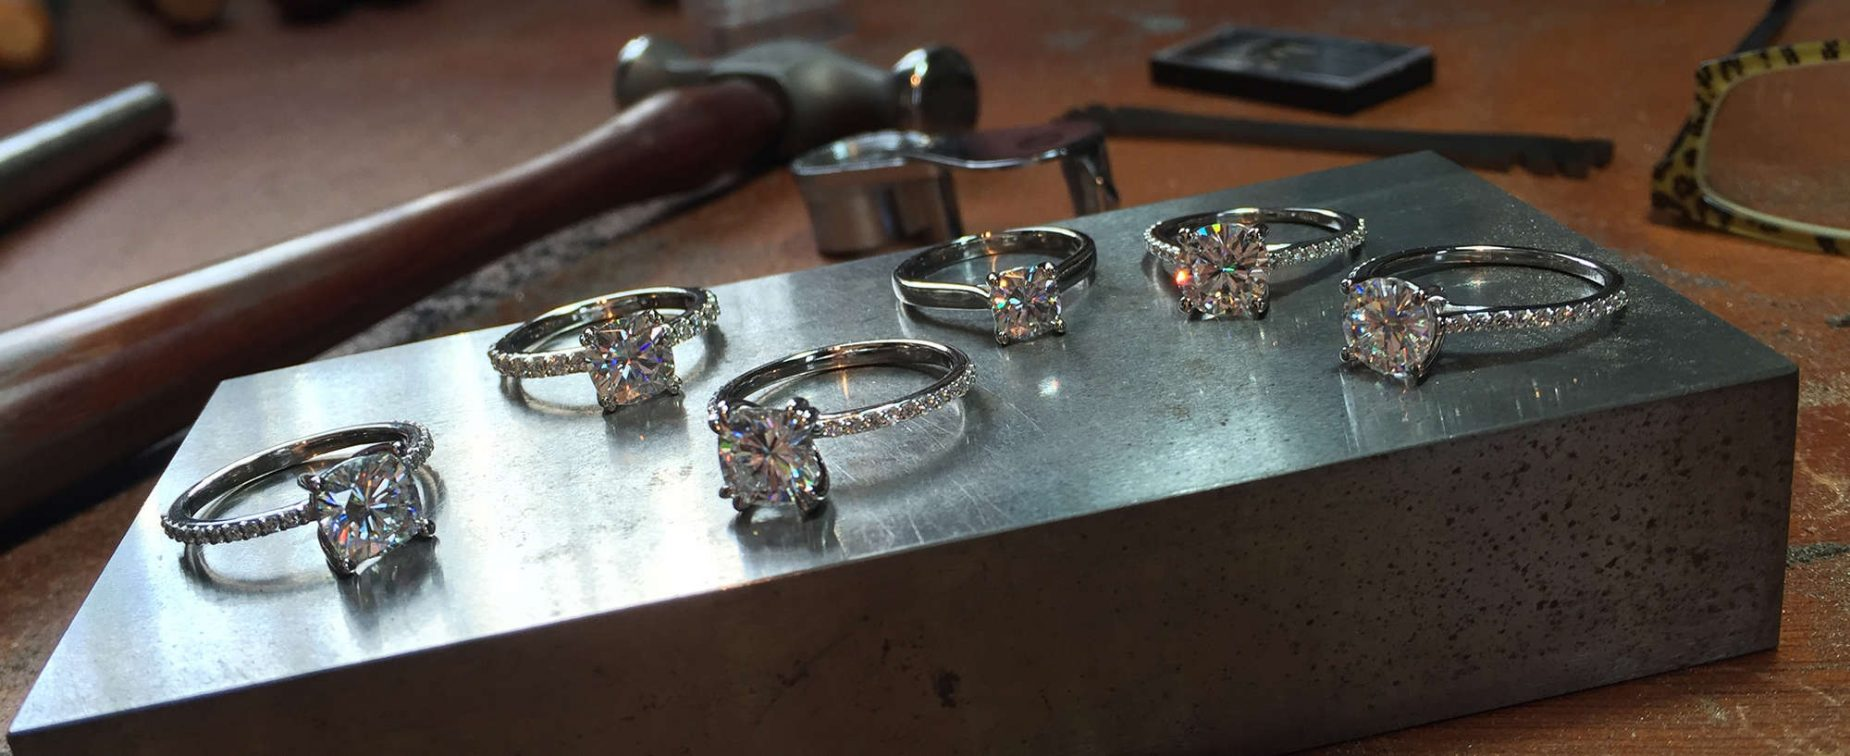 Forever One Group Shot Moissanite Jewel Jewelry Jeweler